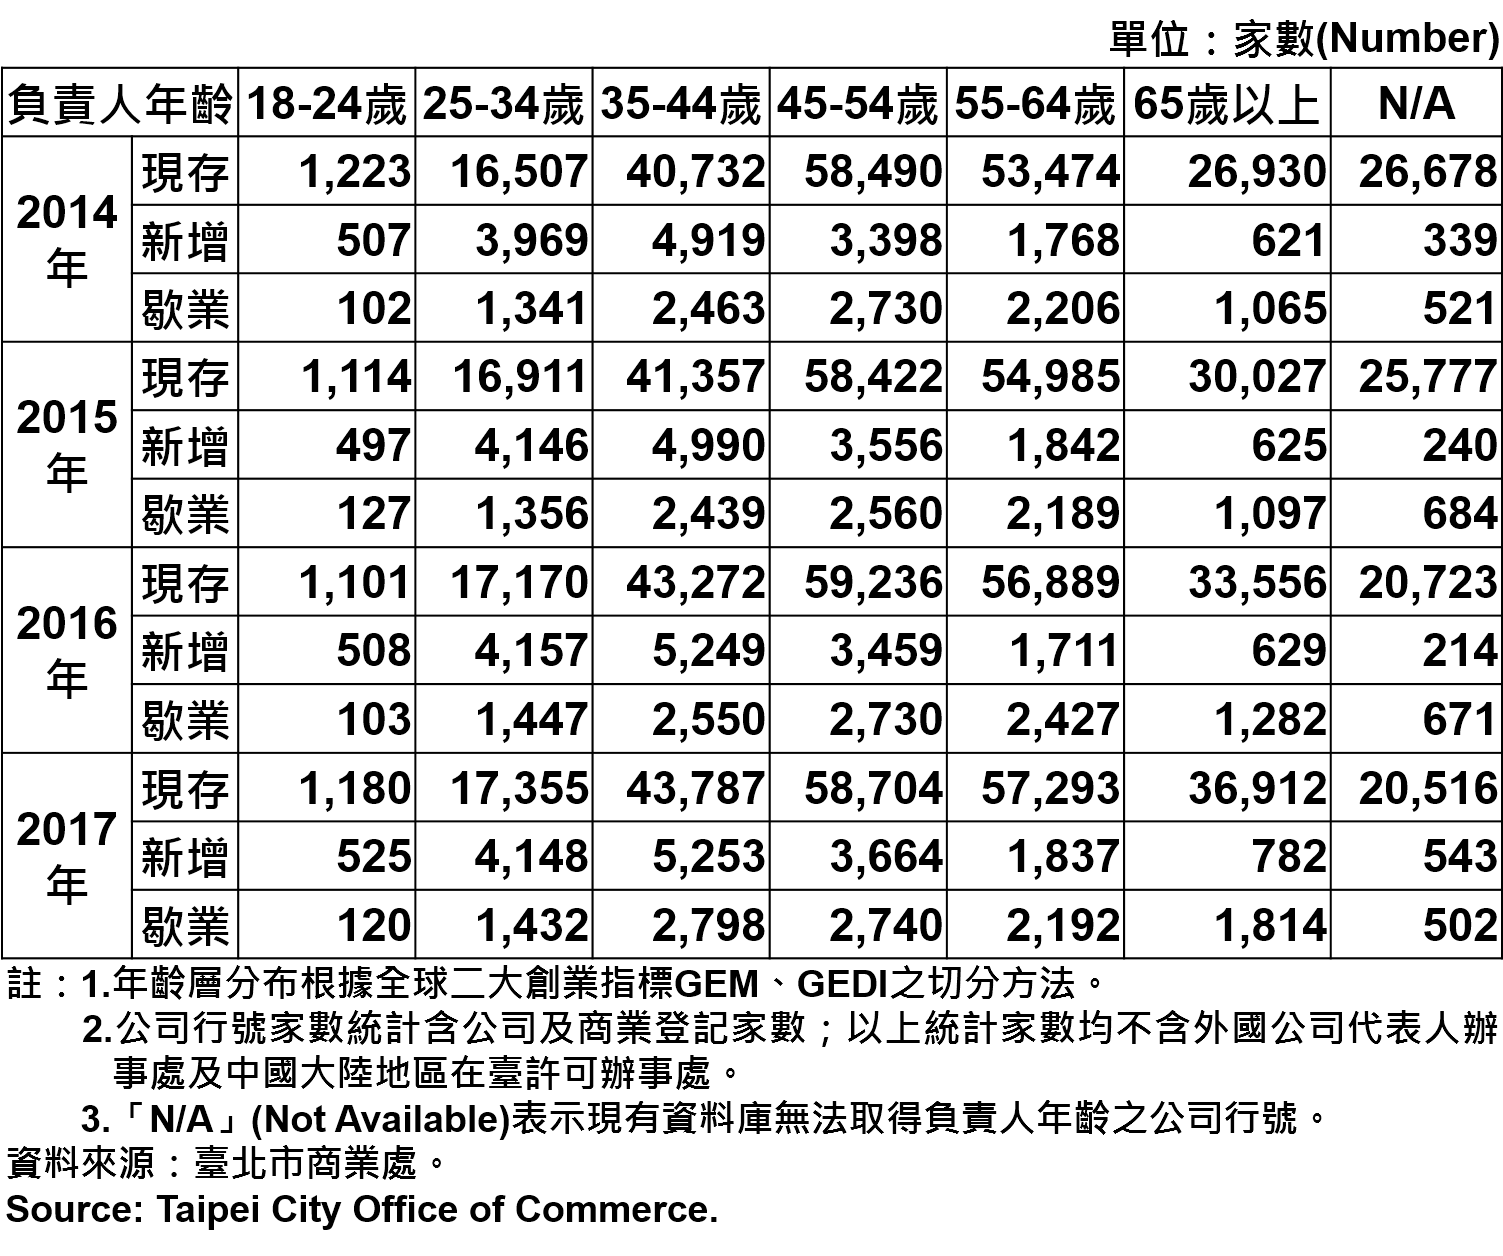 表6、臺北市公司行號負責人年齡分布情形—2017 Responsible Person of Newly Registered Companies In Taipei by Age—2017